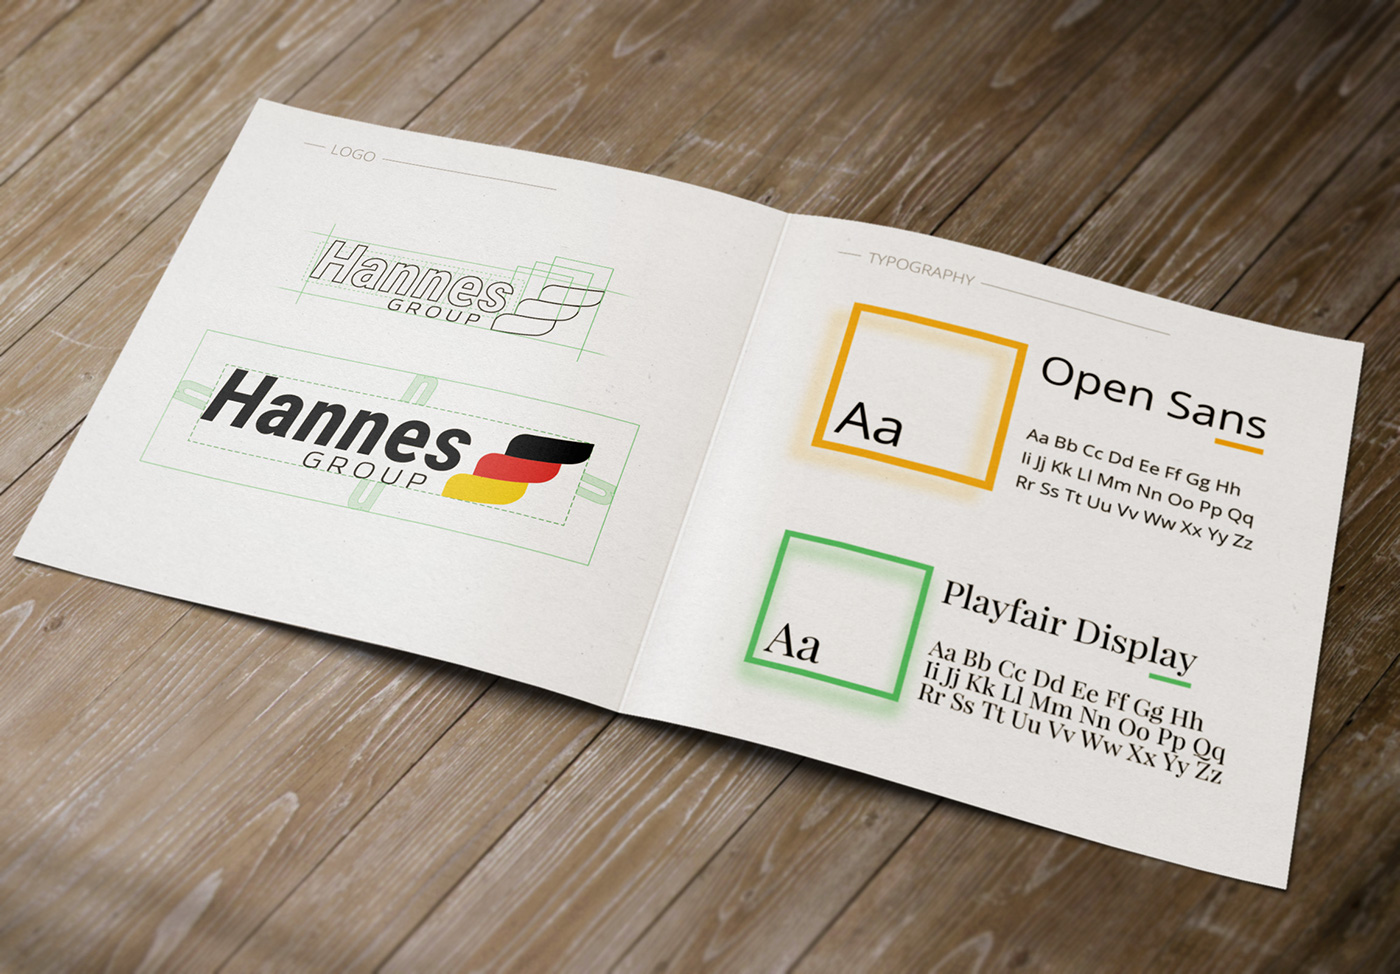 Web presentation hannes group coffee romiani on behance after analyzing colors and shapes we created logos with our own fonts and key colors we also created the rules for their usage in typography and in web reheart Image collections